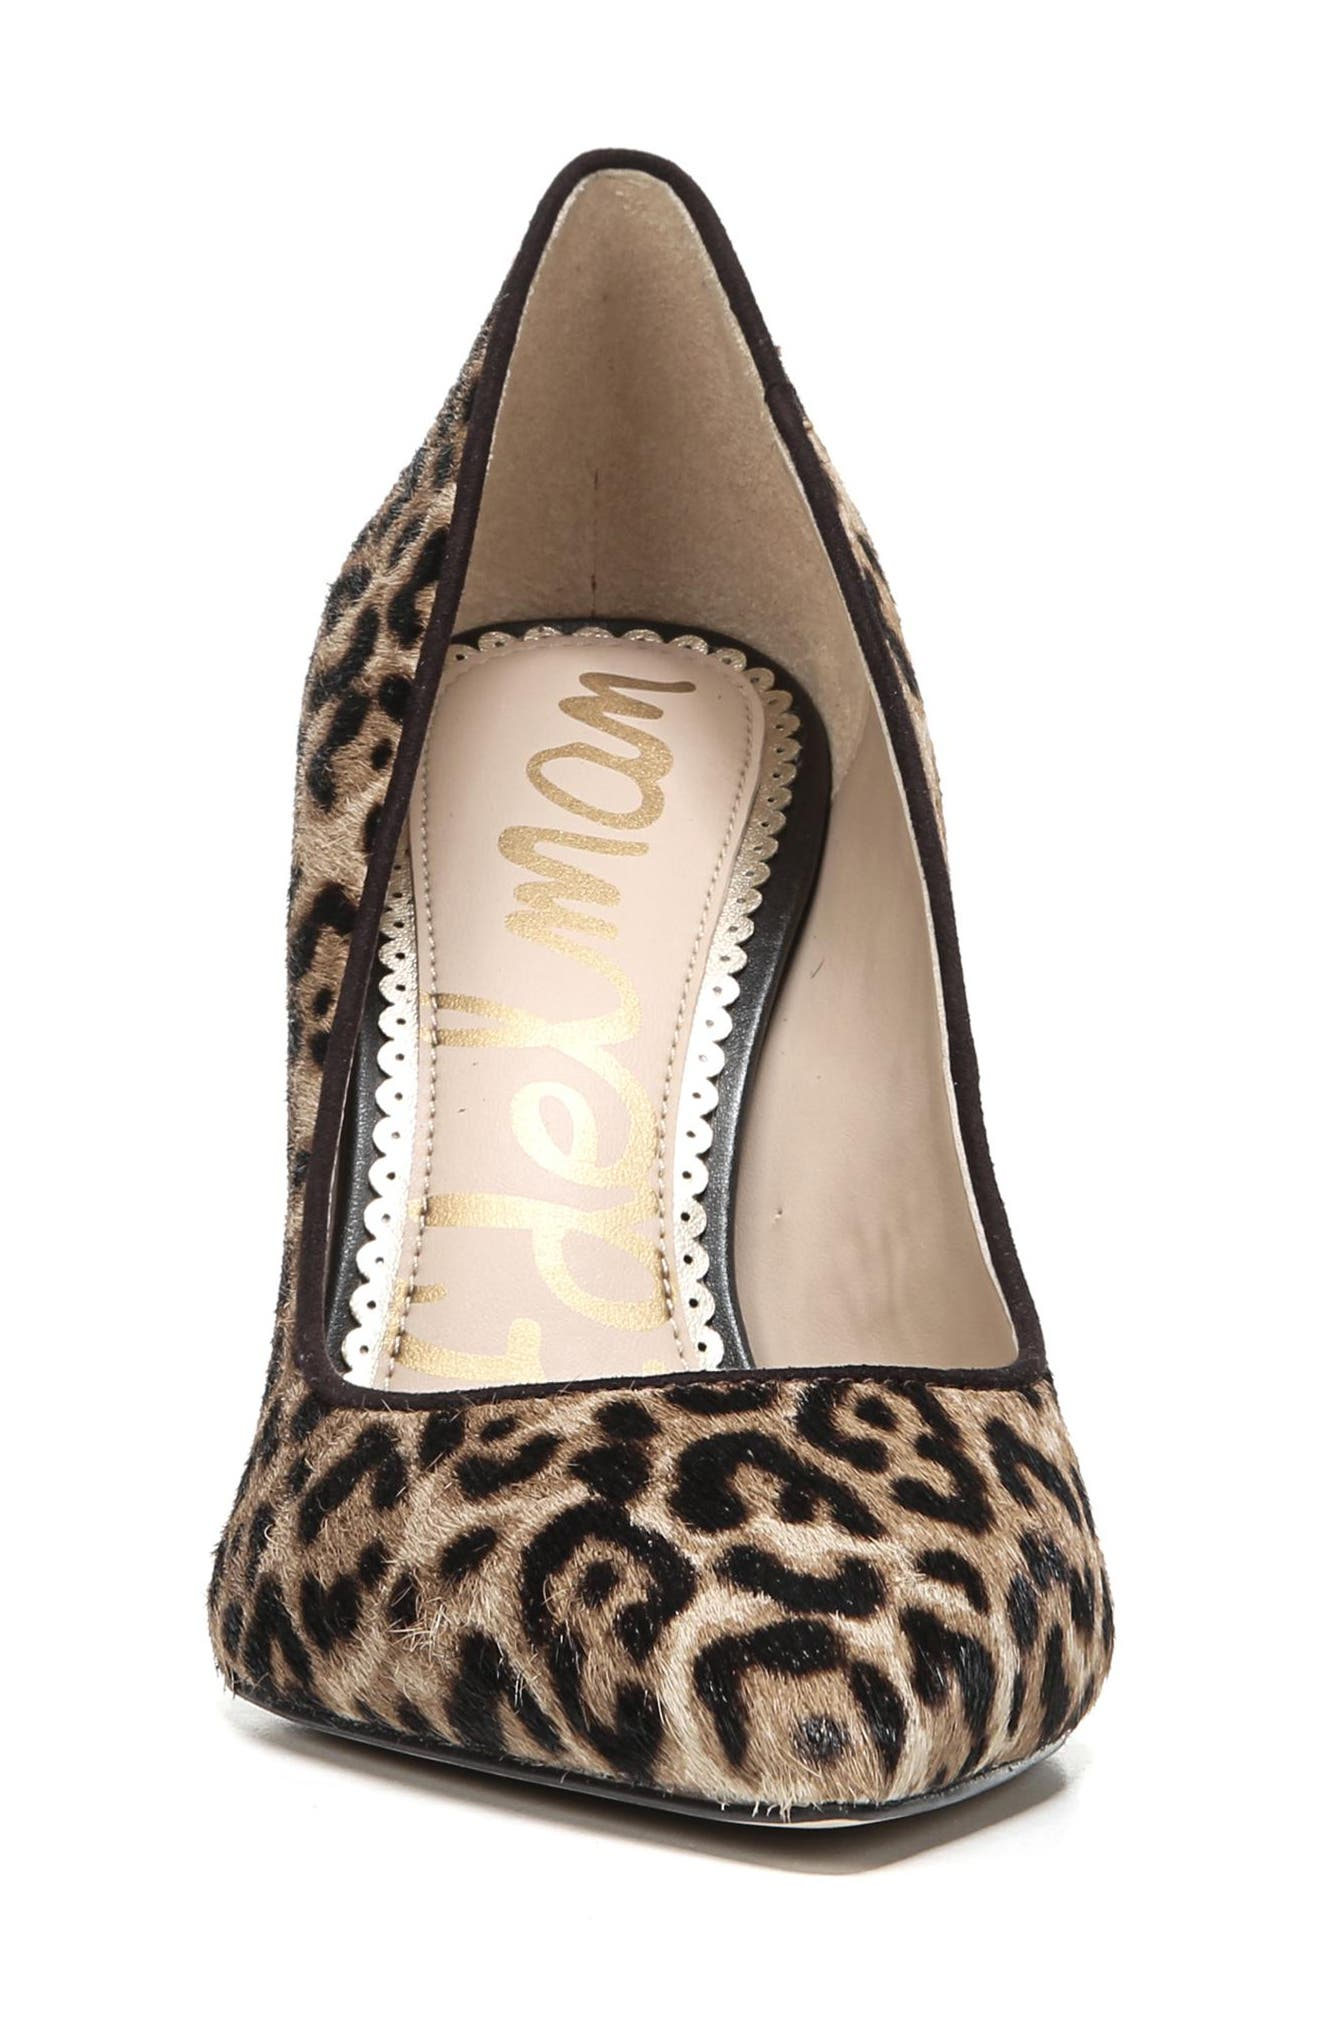 SAM EDELMAN, Hazel Pointy Toe Pump, Alternate thumbnail 4, color, LEOPARD CALF HAIR